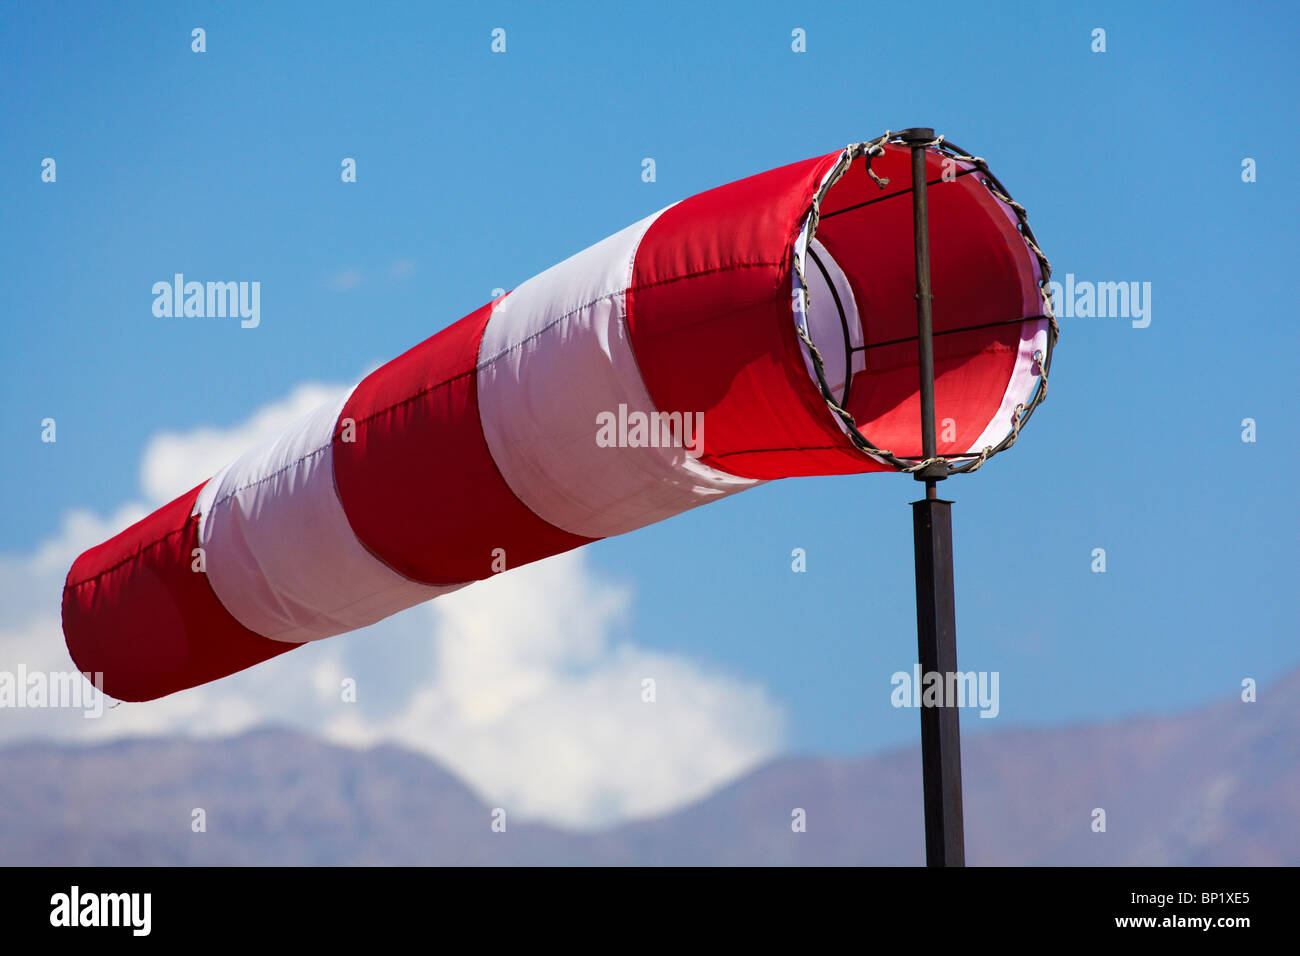 Wind Sock, Vitacura Airfield, Santiago, Chile, South America - Stock Image